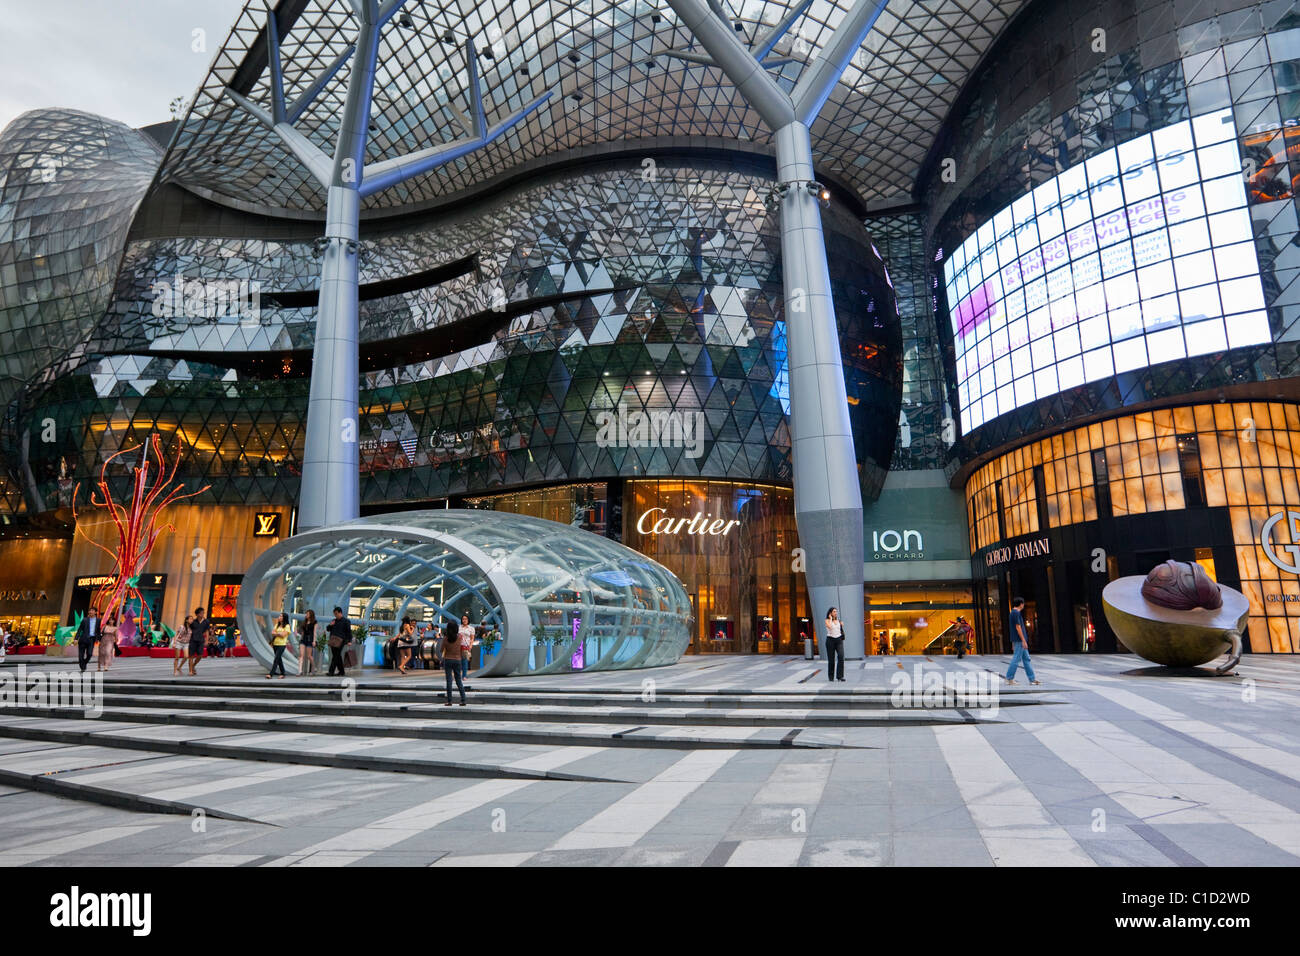 ION Orchard Mall, in the shopping district of Orchard Road, Singapore - Stock Image